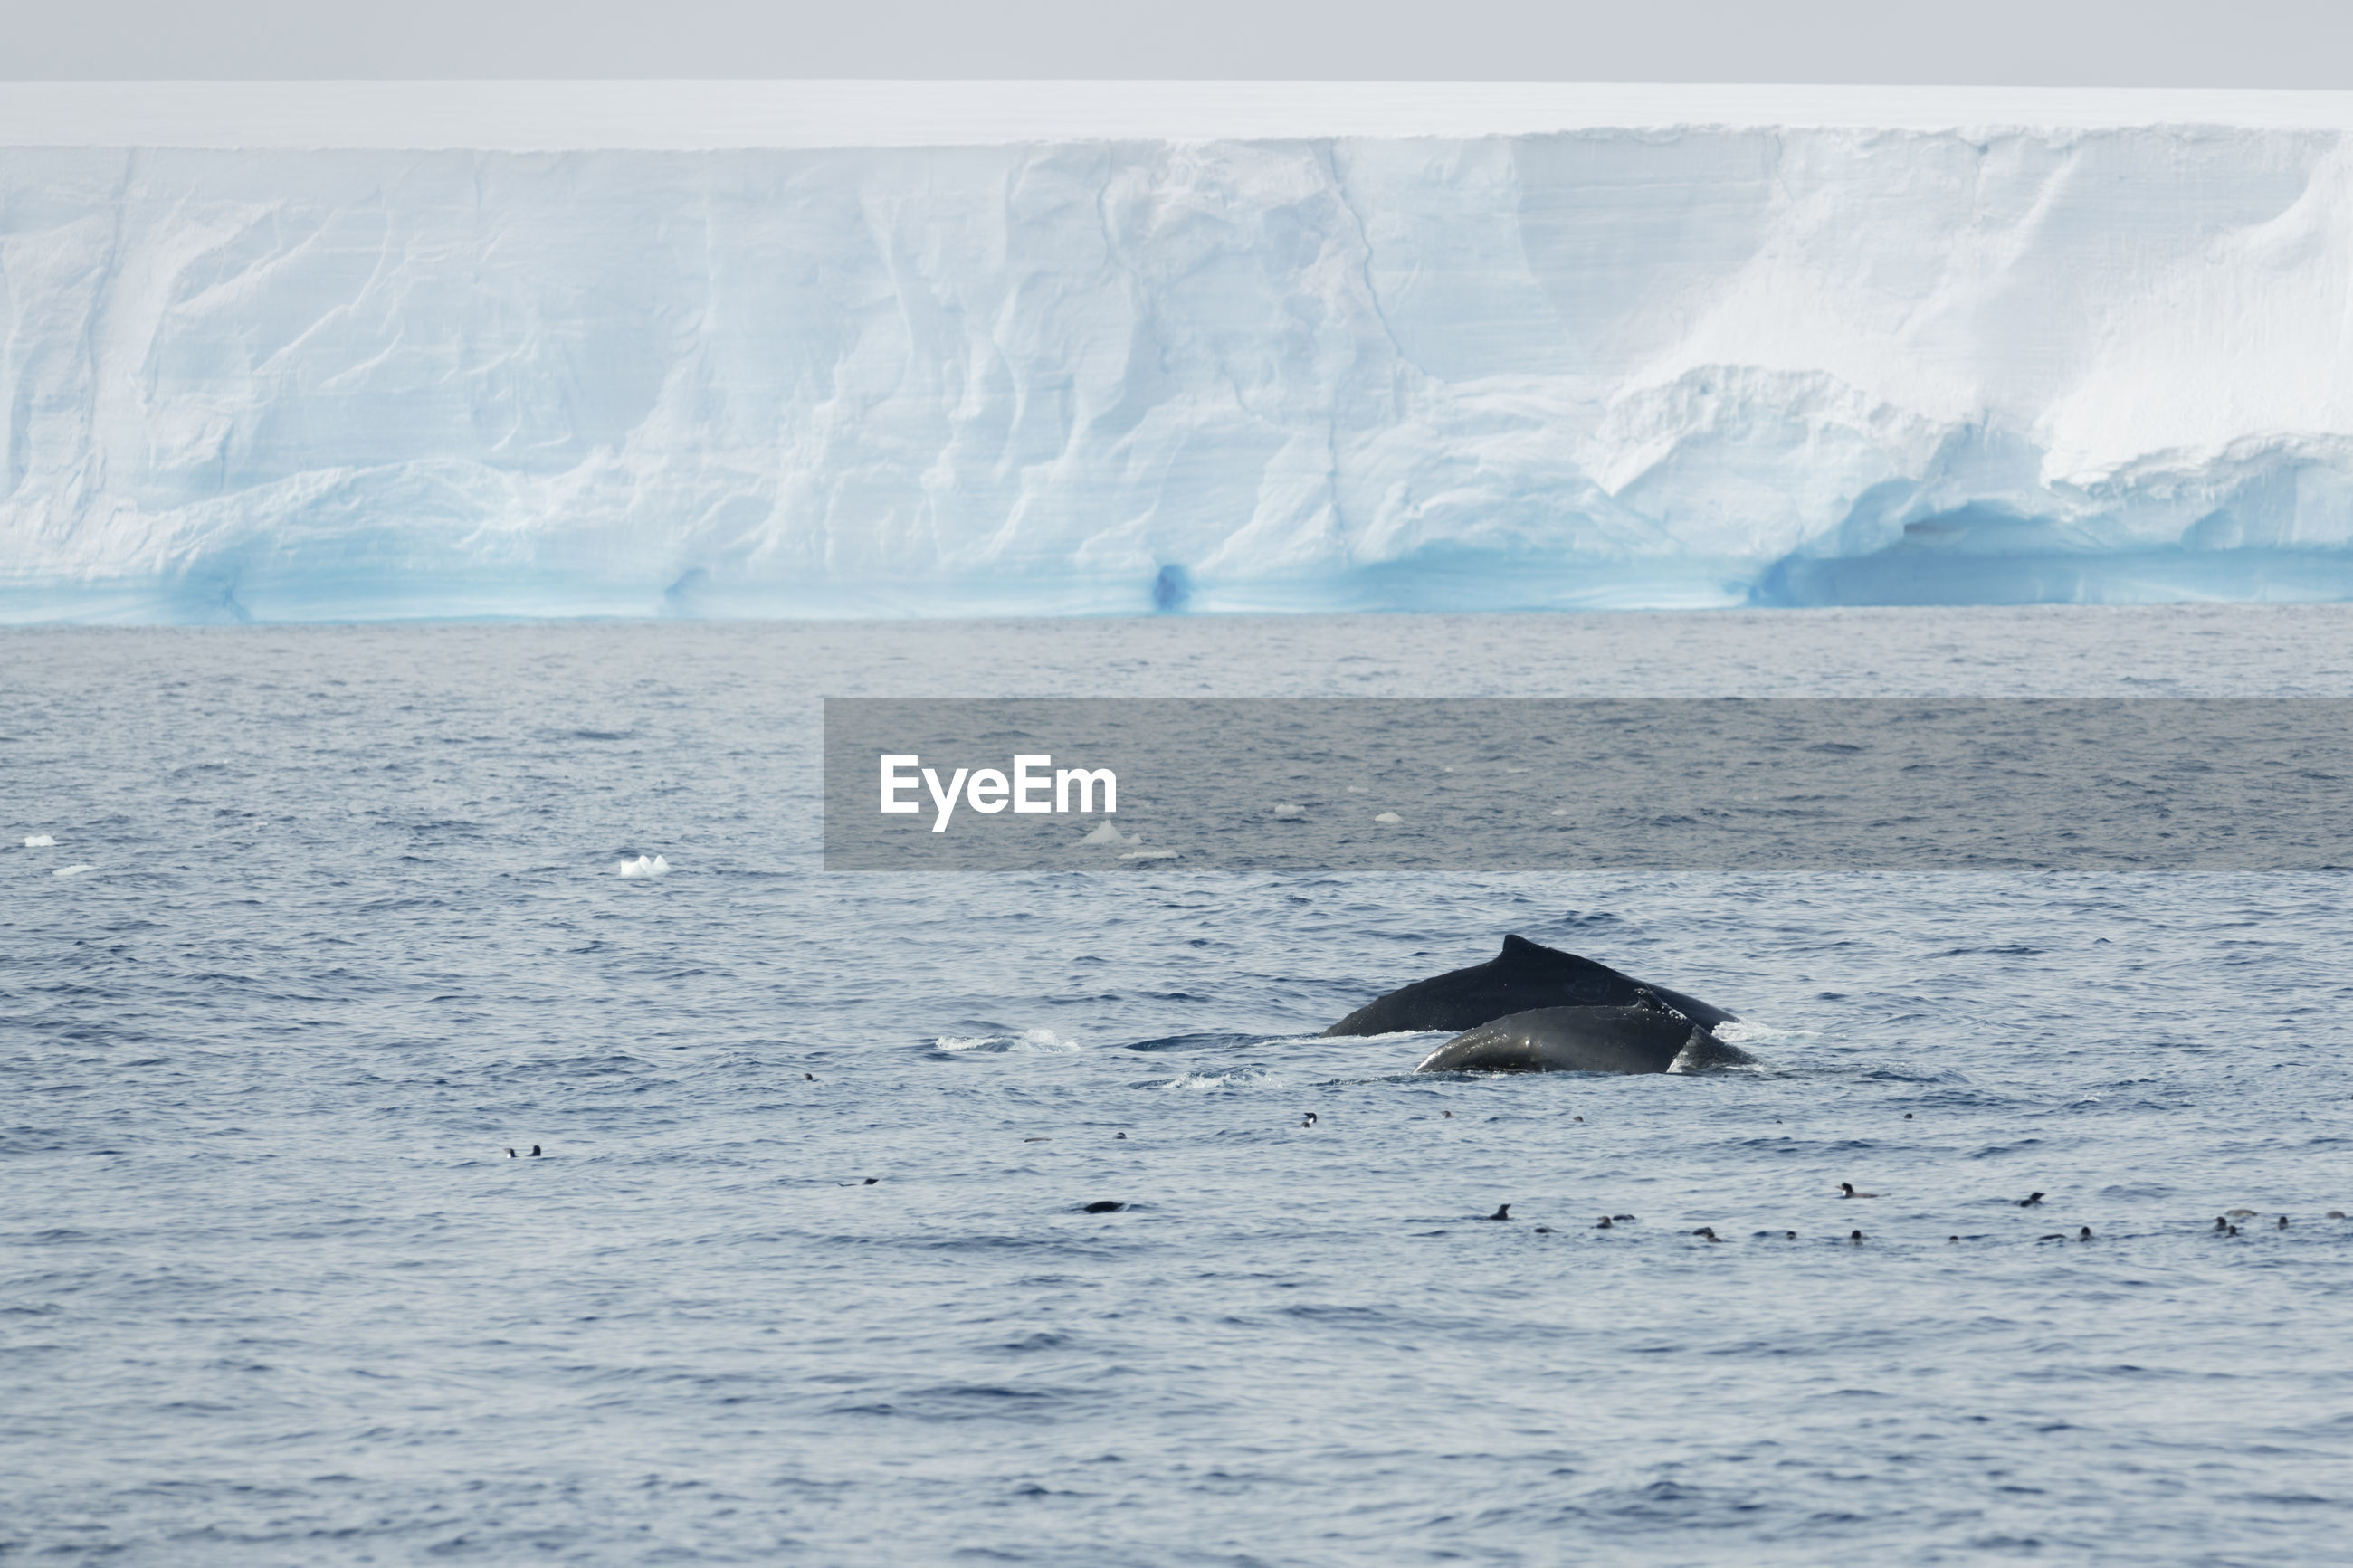 Humback whale with a calf and penguins in front of a tabular iceberg in the antarctic sound.